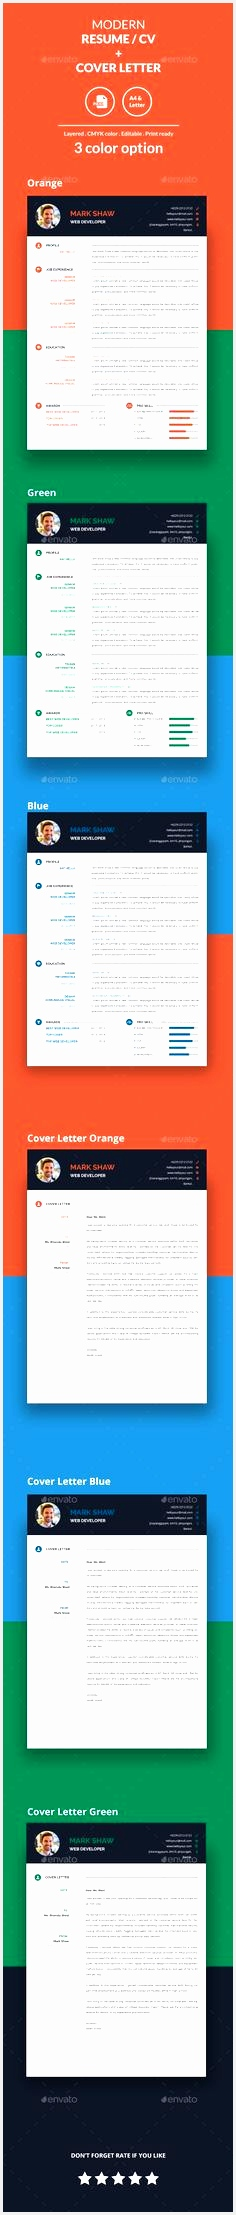 Modern Resume CV Cover Letter Template InDesign INDD2215236